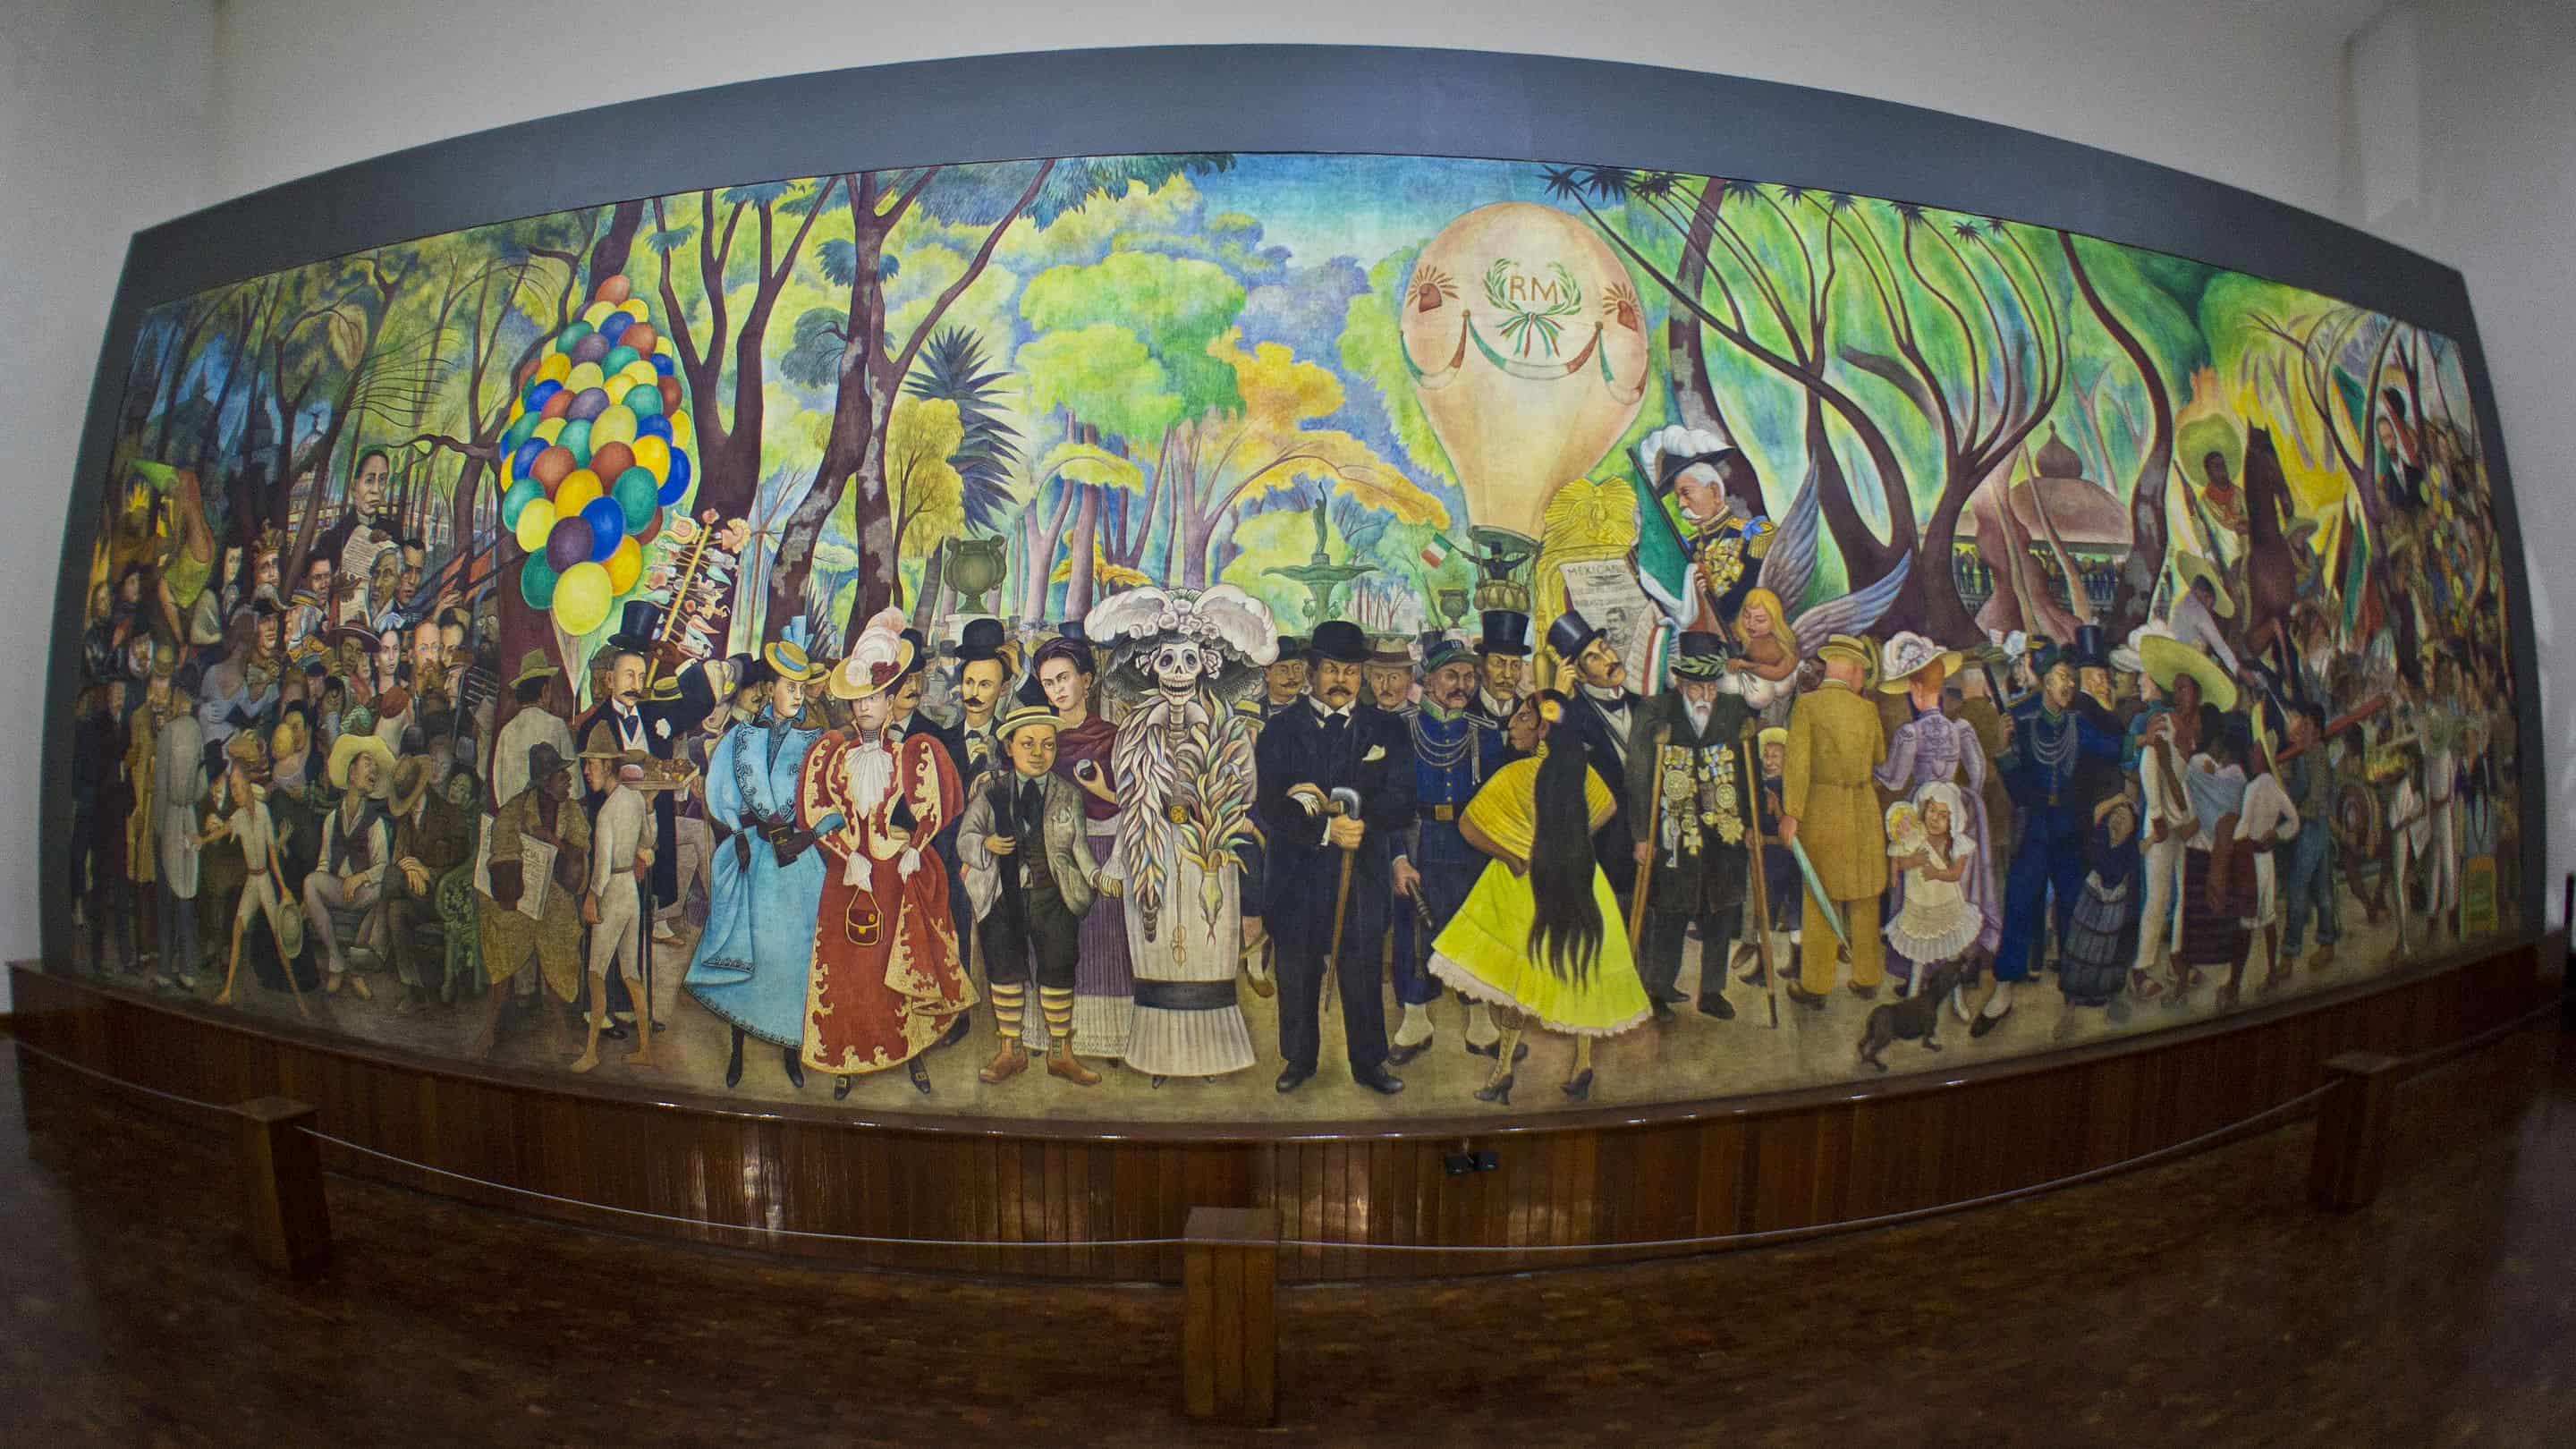 mural painting by diego rivera of festive scene in a park with about 50 people